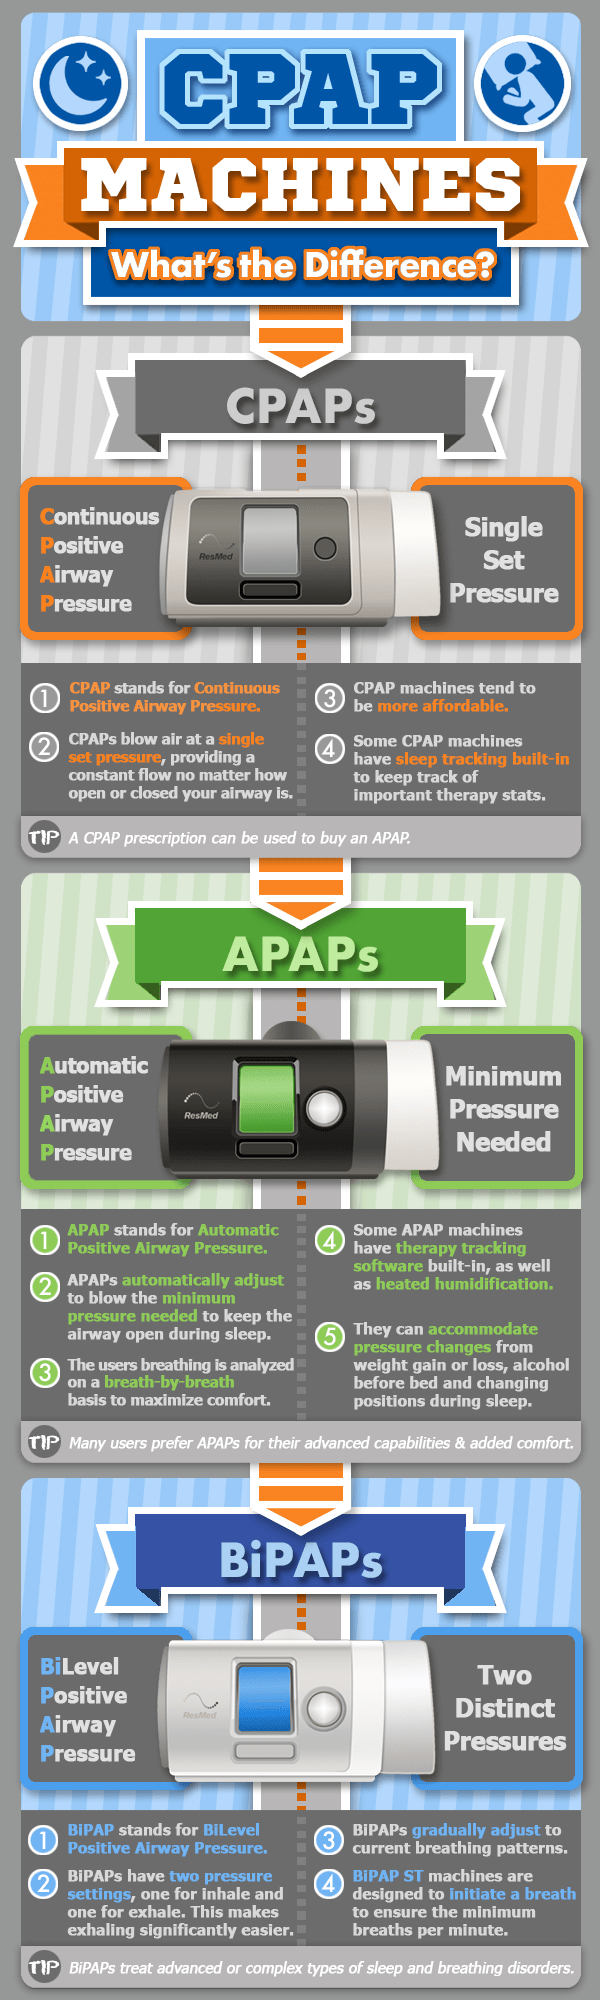 CPAP Machine Types Infographic